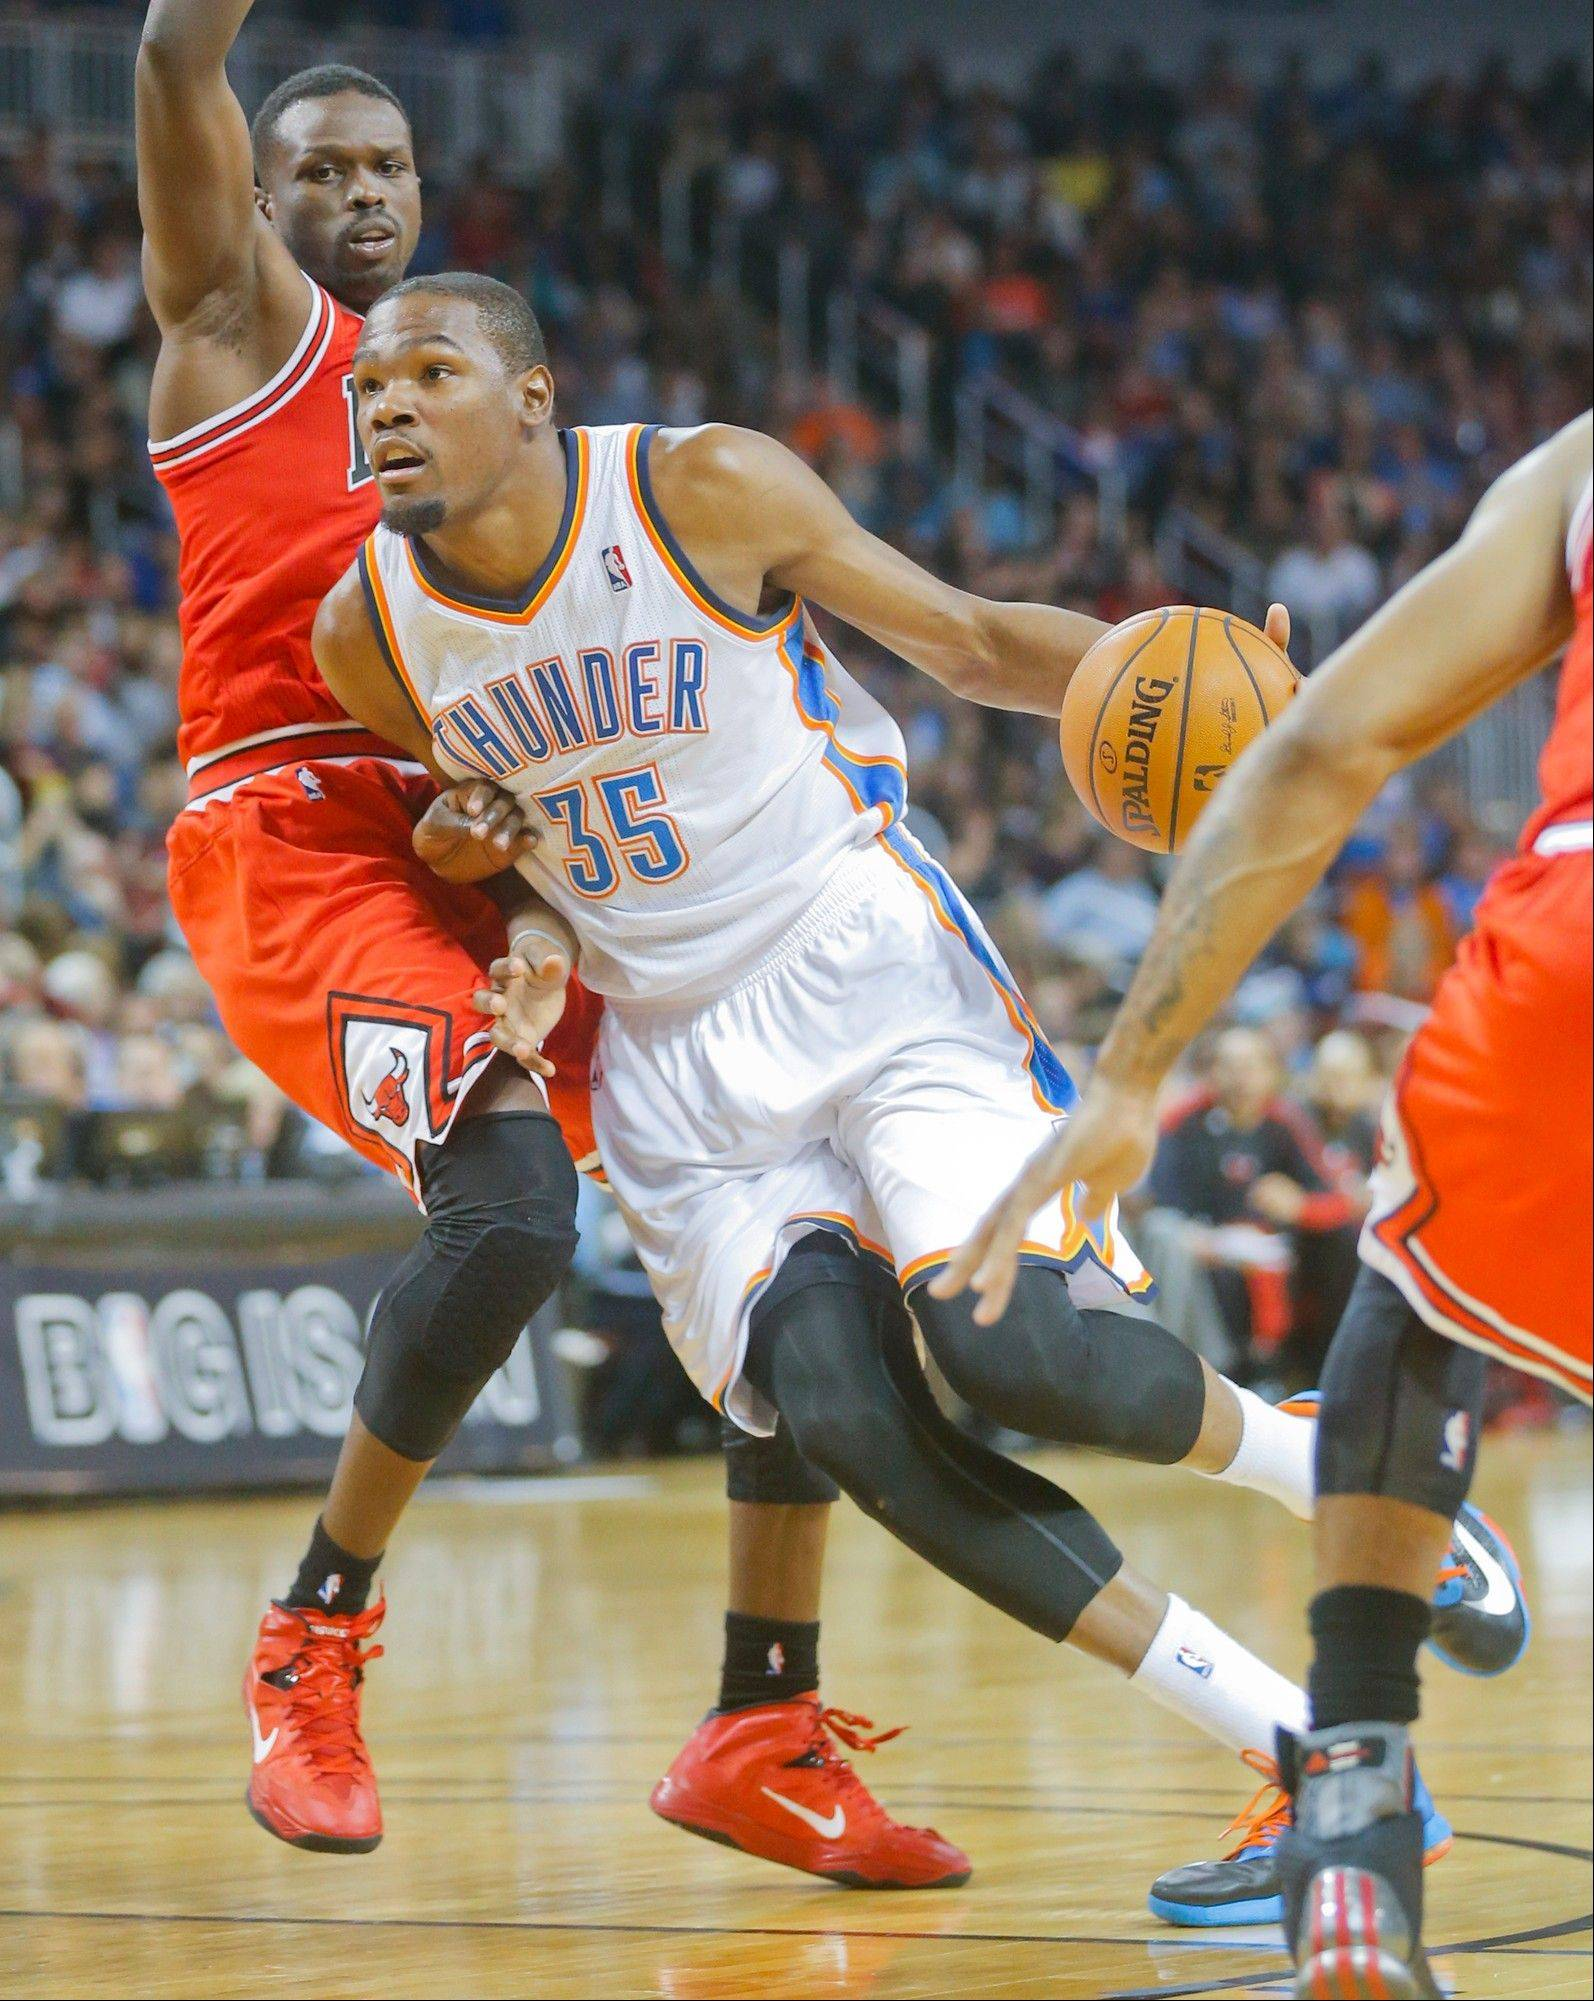 Oklahoma City's Kevin Durant heads to the basket against the Bulls' Luol Deng in the second quarter during Wednesday night's preseason game in Wichita, Kan.